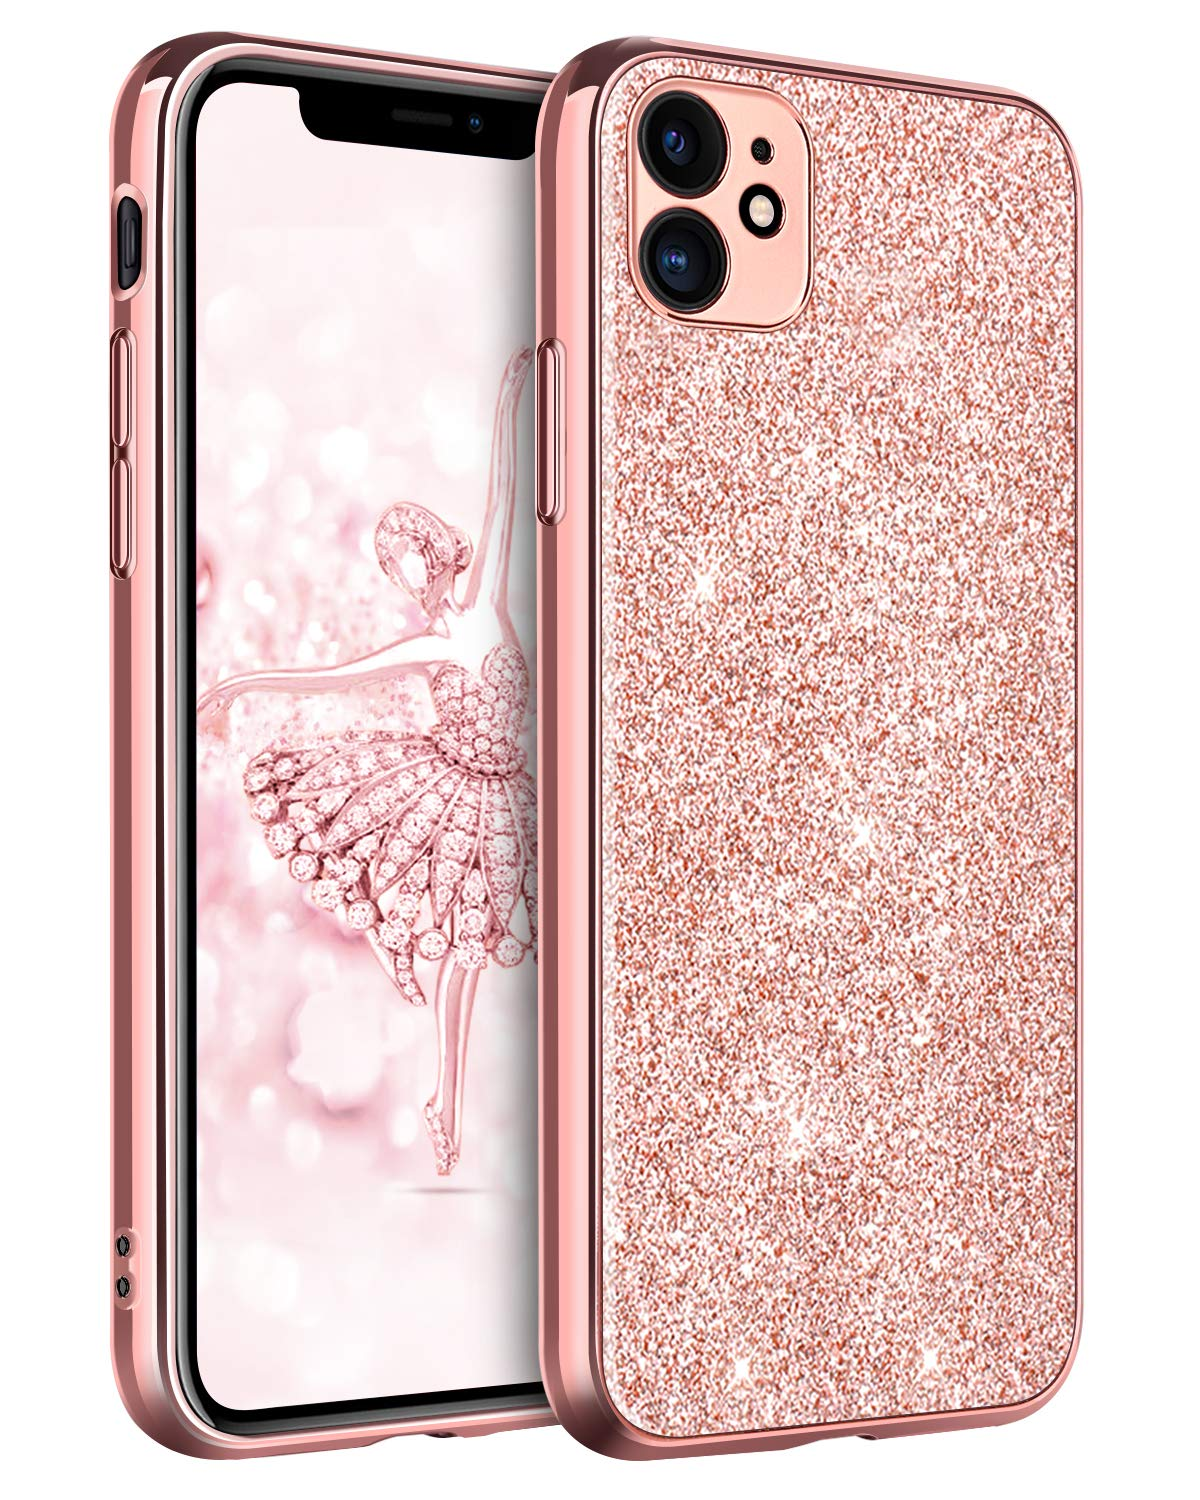 """DUEDUE iPhone 11 Case Bling, Sparkly Glitter Slim Hybrid Hard PC Cover Shockproof Non-Slip,Glitter Full Body Protective Phone Cover Case for iPhone 11 6.1"""" 2019 for Women/Girls,Rose Gold"""